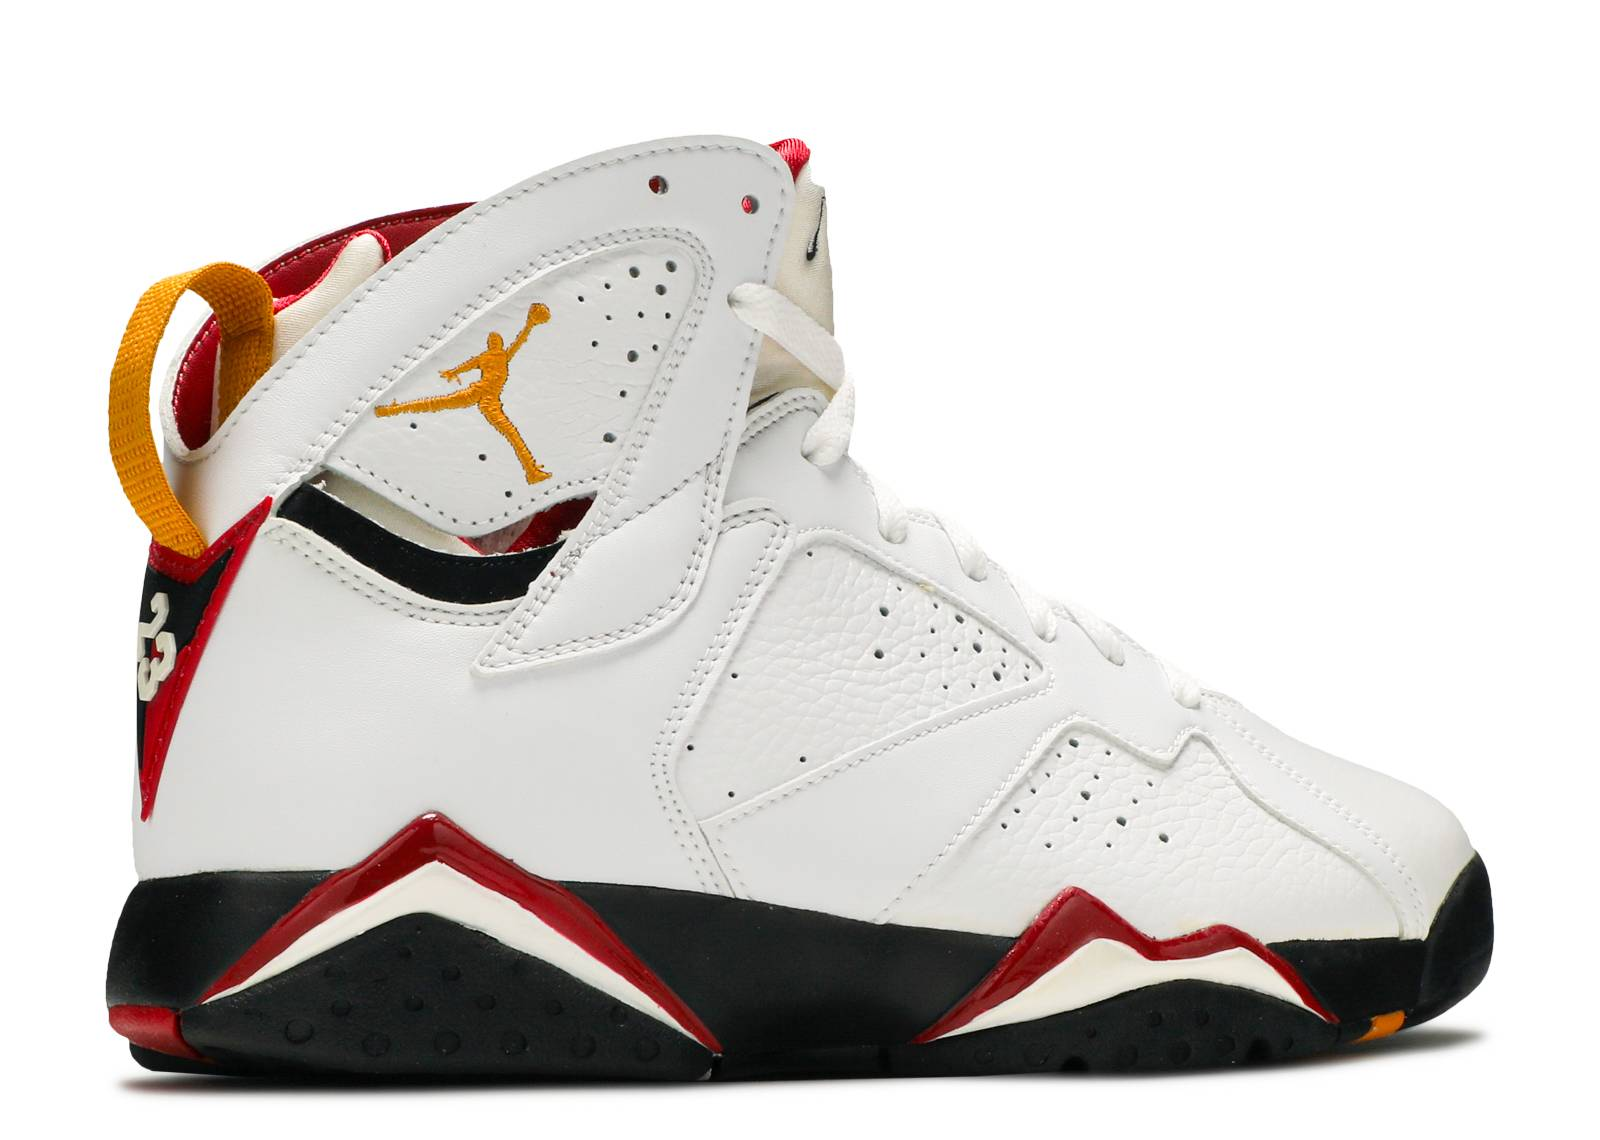 detailed look e19a3 d6442 Air Jordan 7 Retro - Air Jordan - 304775 101 - white black-cardinal-red-bronze    Flight Club